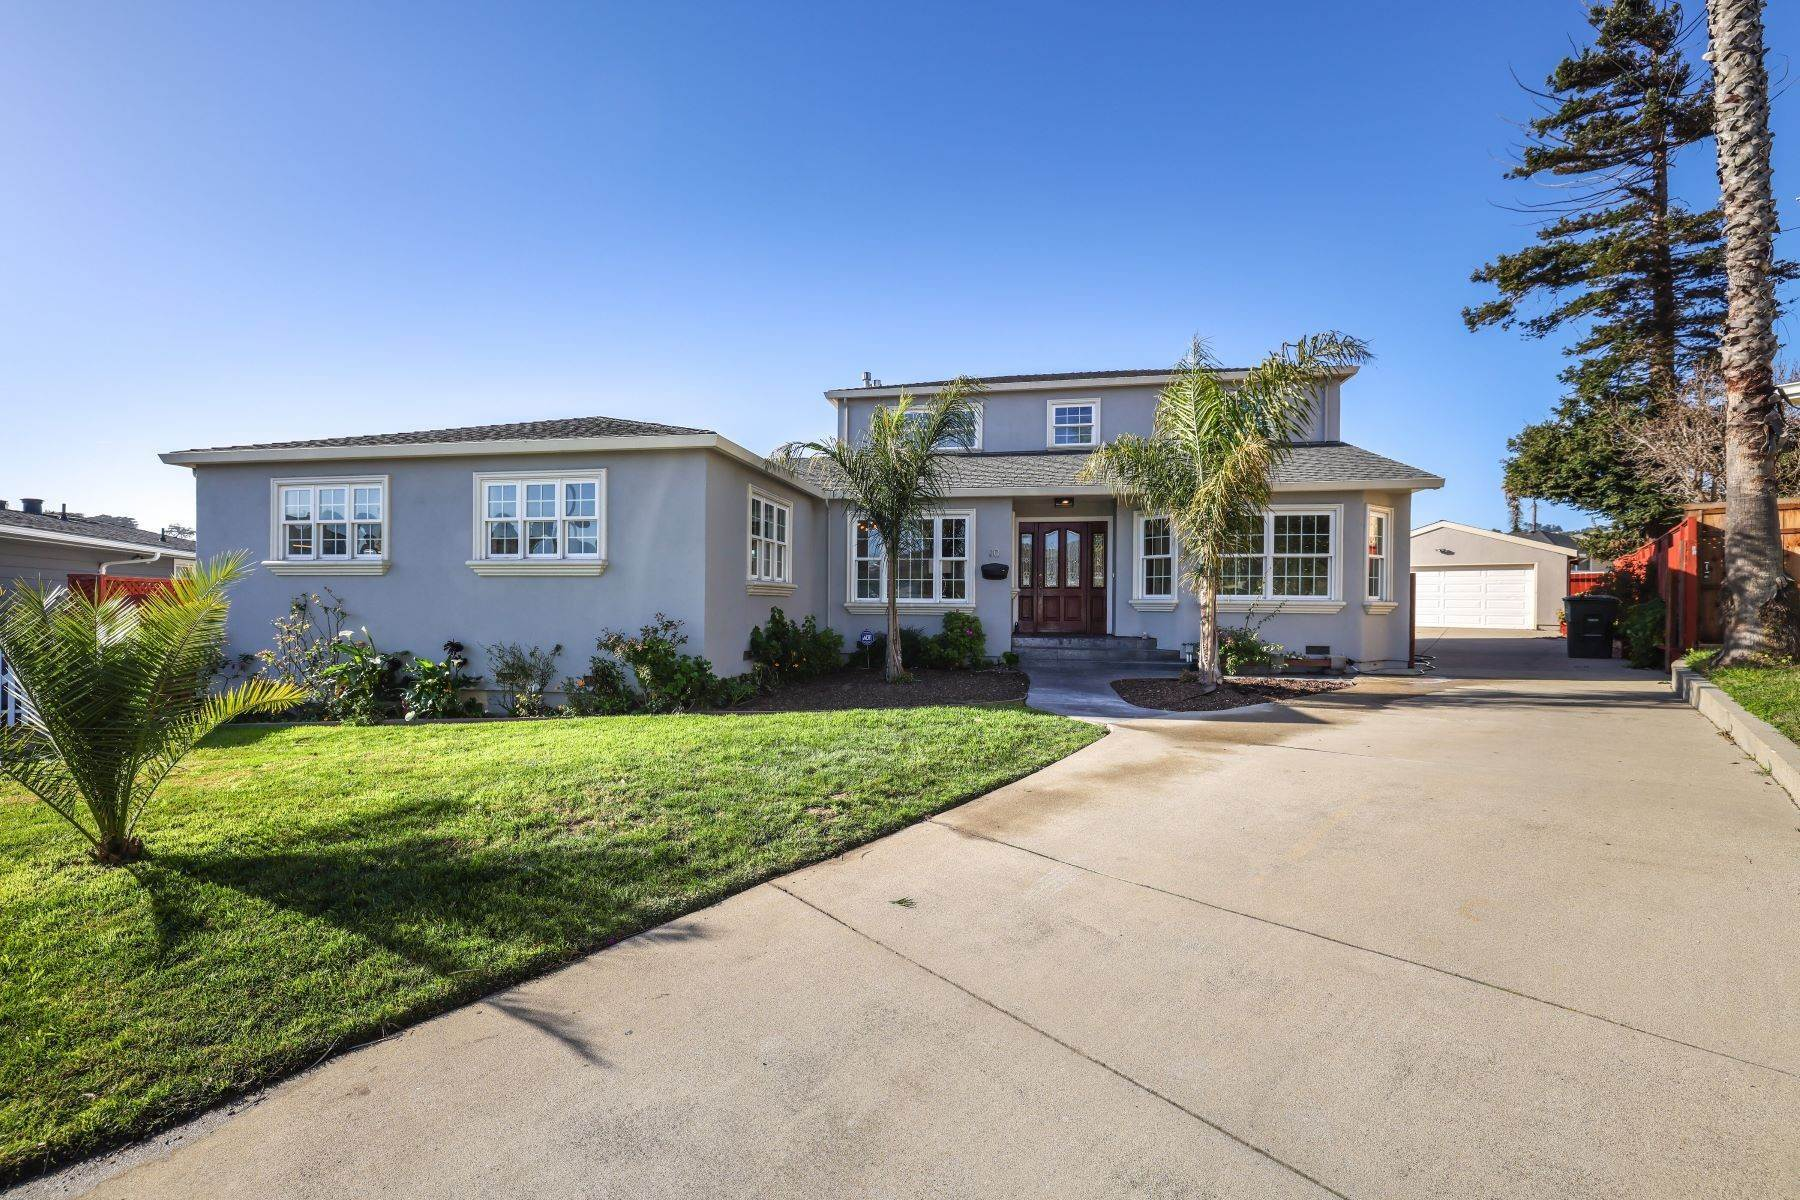 Single Family Homes for Sale at Meticulously Maintained Family Home 10 Chico Court South San Francisco, California 94080 United States